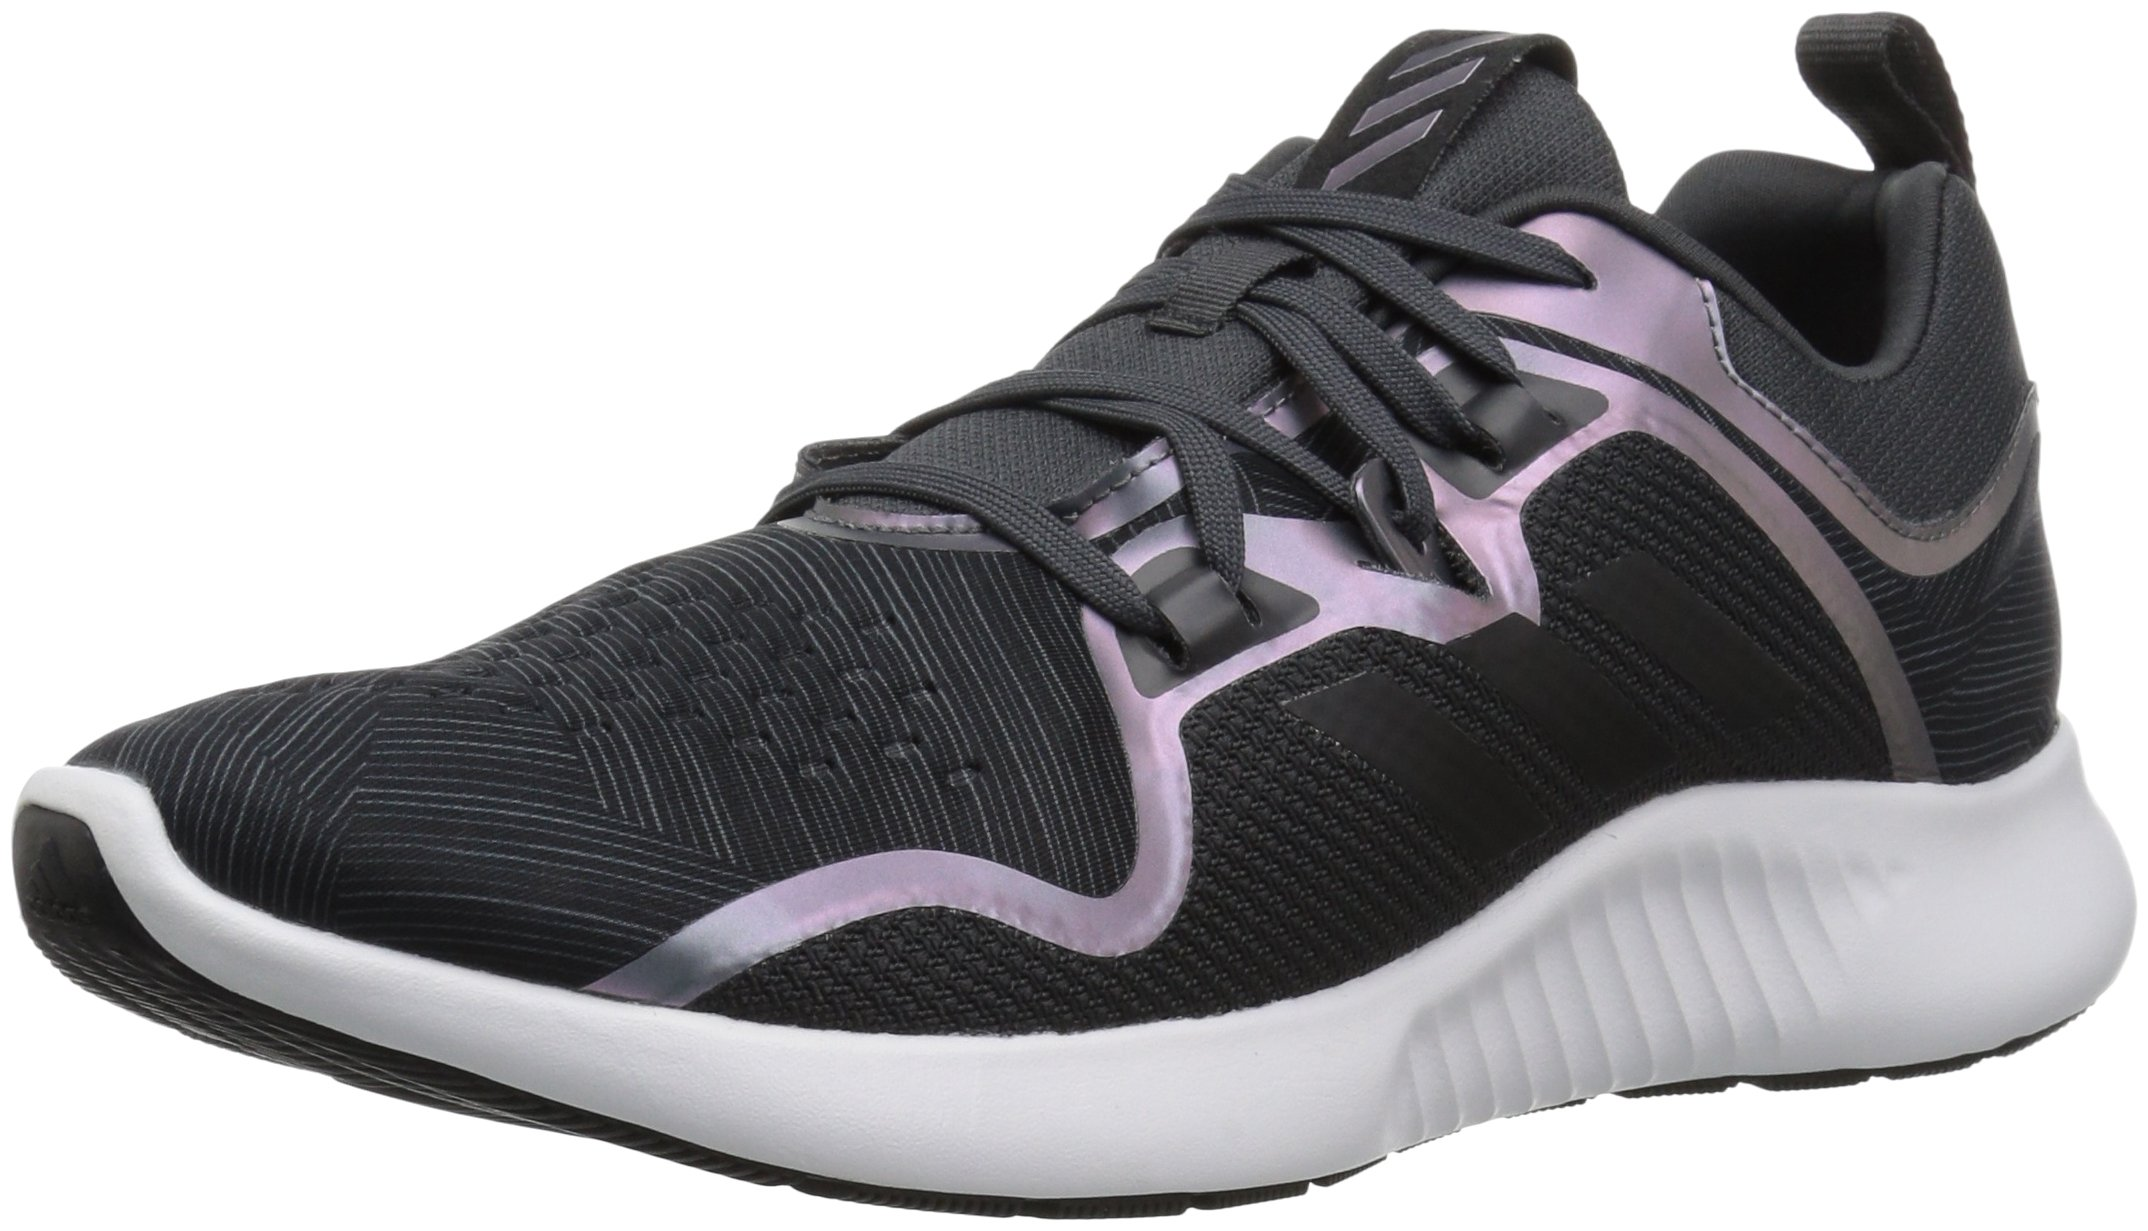 adidas Women's EdgeBounce Running Shoe Carbon/Black/Night Metallic 5.5 M US by adidas (Image #1)